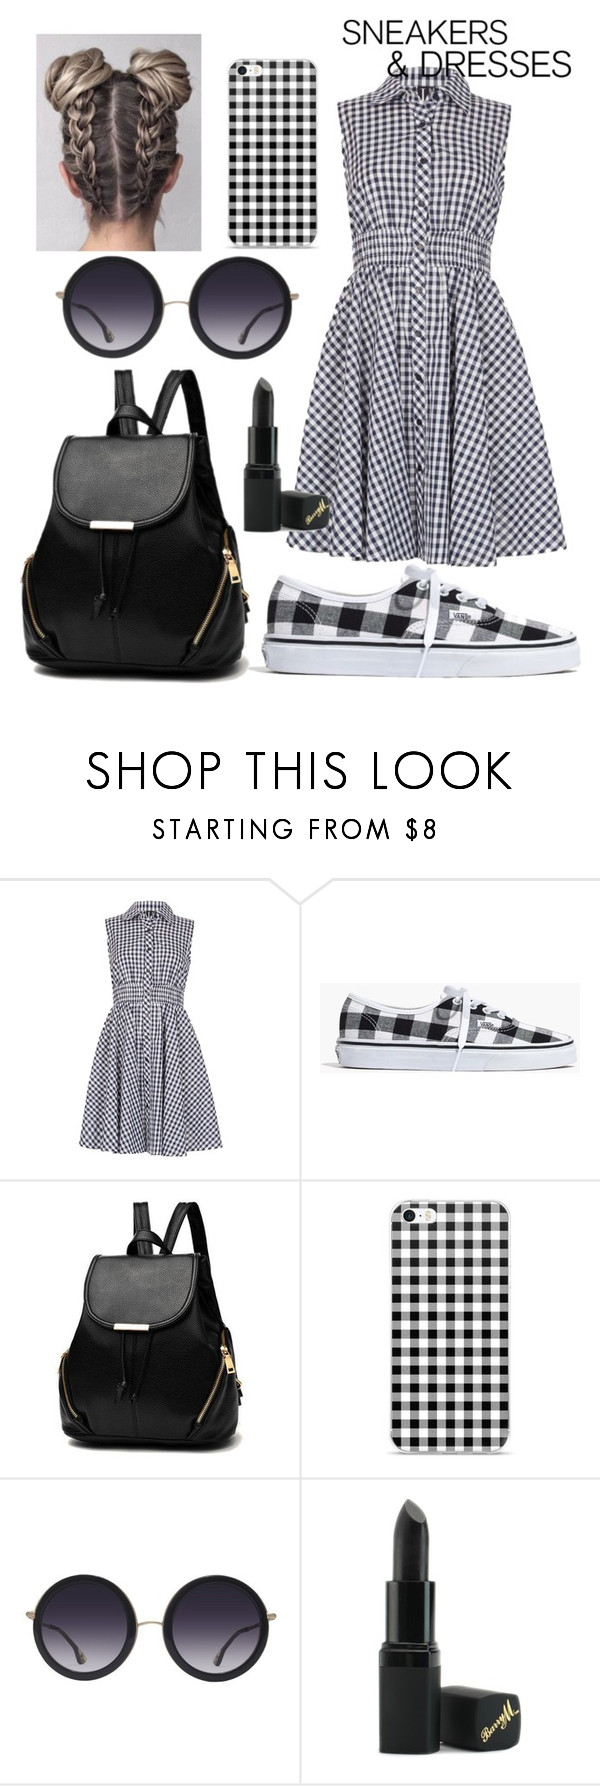 """Untitled #46"" by smurfs-stalker ❤ liked on Polyvore featuring Izabel London, Madewell, Alice + Olivia and Barry M"